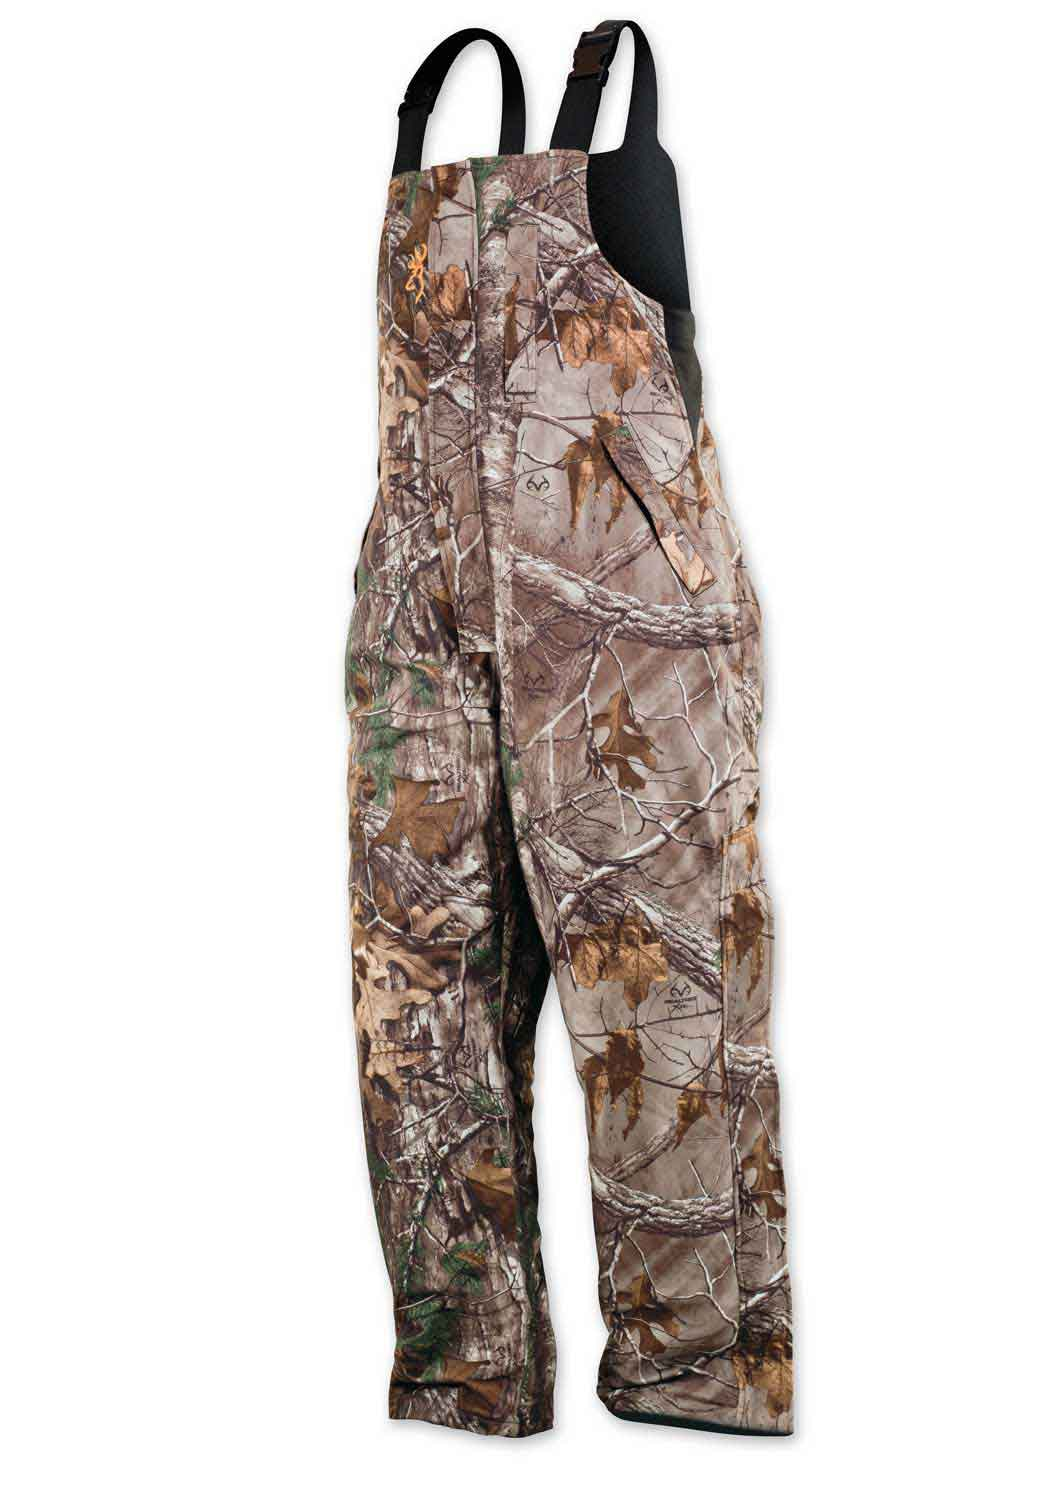 Browning Wasatch Junior Insulated Rain Bib in Realtree Xtra Camo